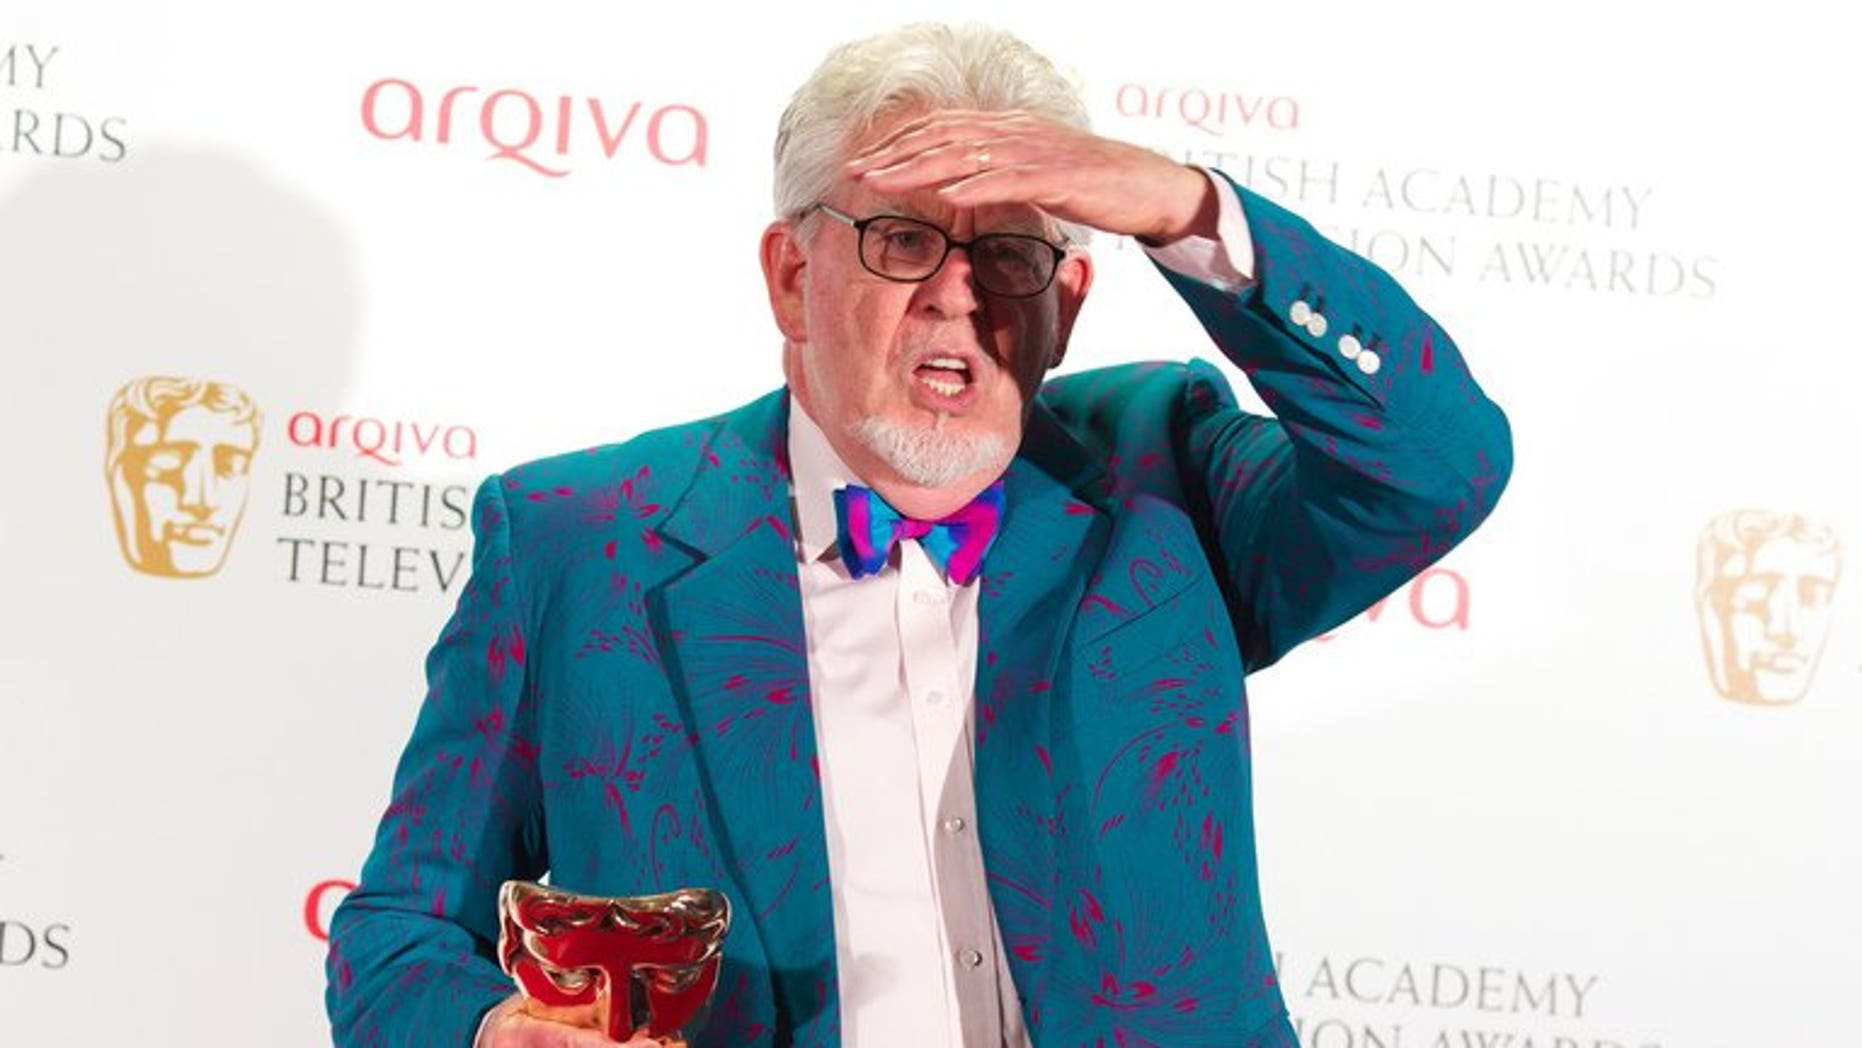 Winner of the Bafta Fellowship award, Australian entertainer Rolf Harris poses in front of the winners boards at the British Academy Television Awards at the Royal Festival Hall in London, on May 27, 2012. Harris was re-arrested by police in Britain on Monday over further allegations of sexual offences.